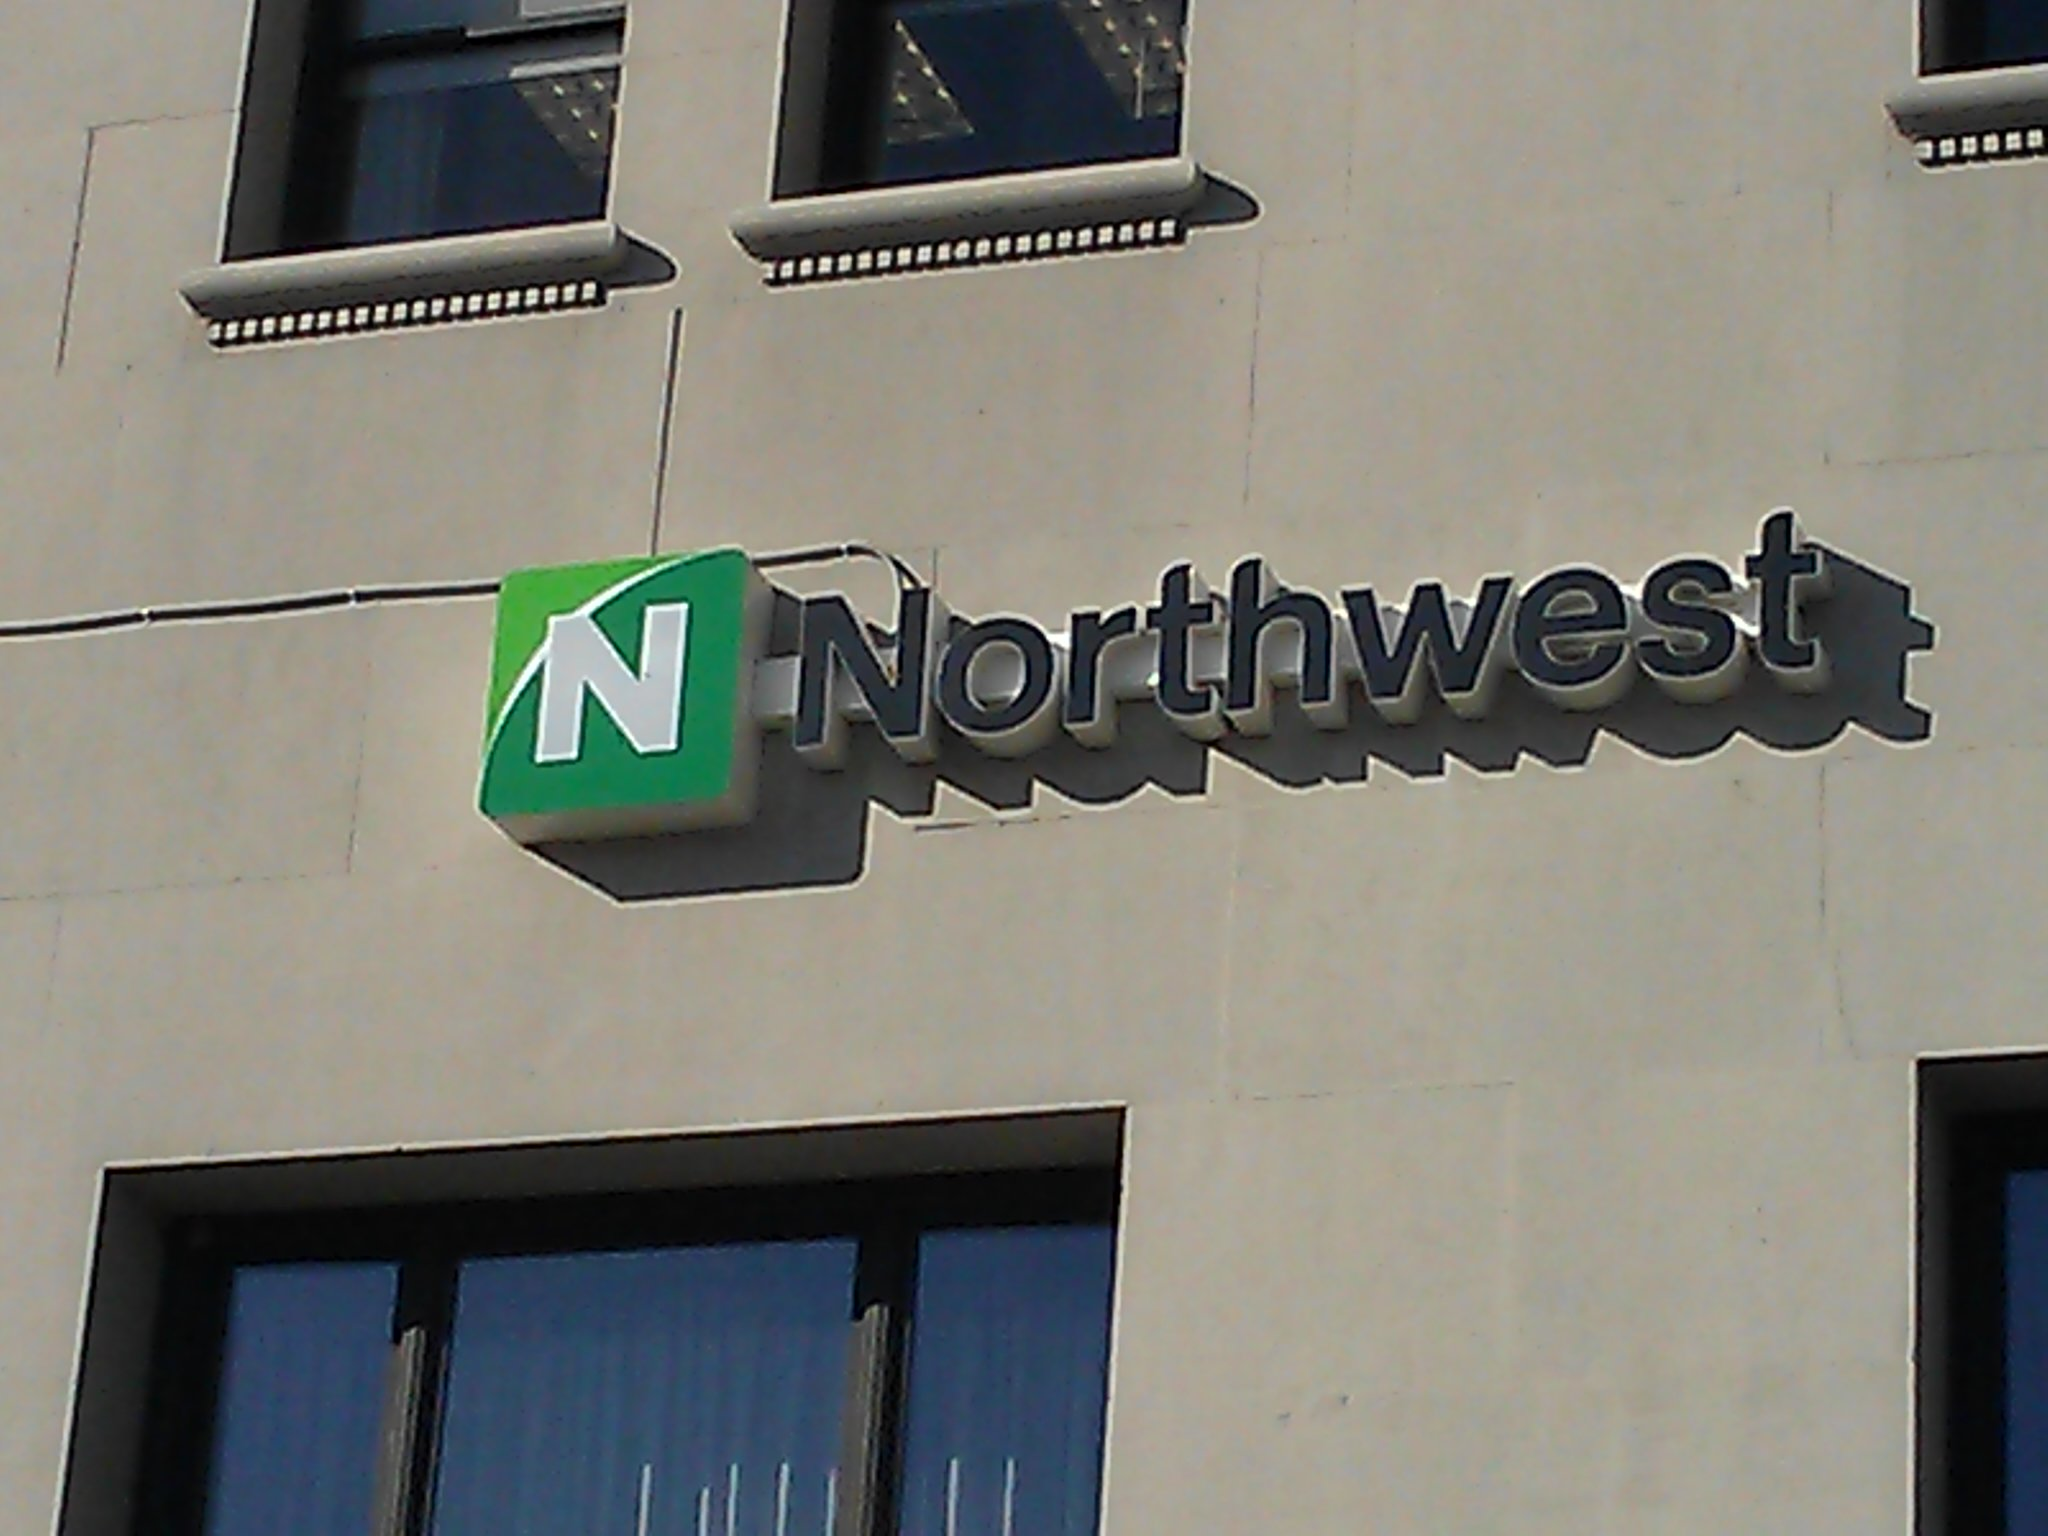 Northwest Bank is repeating benefits of acquiring 18 First Niagara branches.